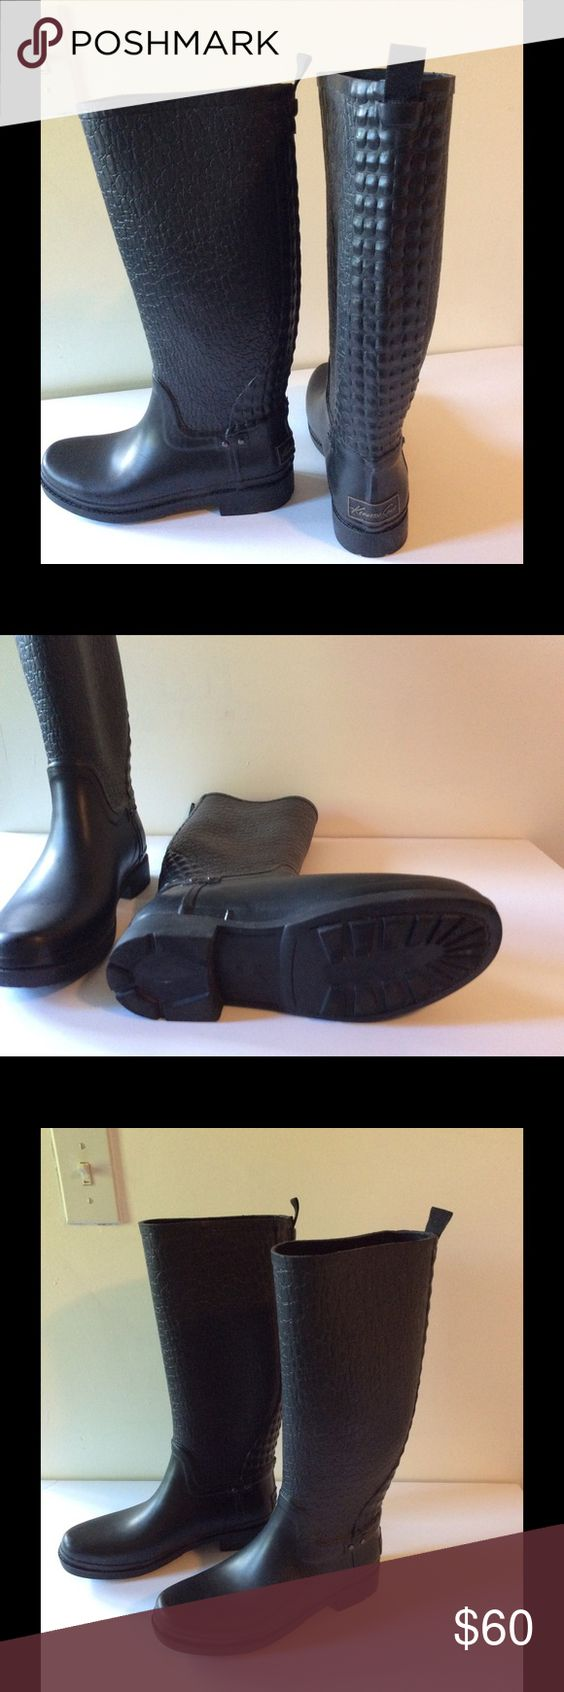 Kenneth Cole 8.5 black rubber boots Worn once! Like new Black Rubber Kenneth Cole Boots. Kenneth Cole Shoes Winter & Rain Boots